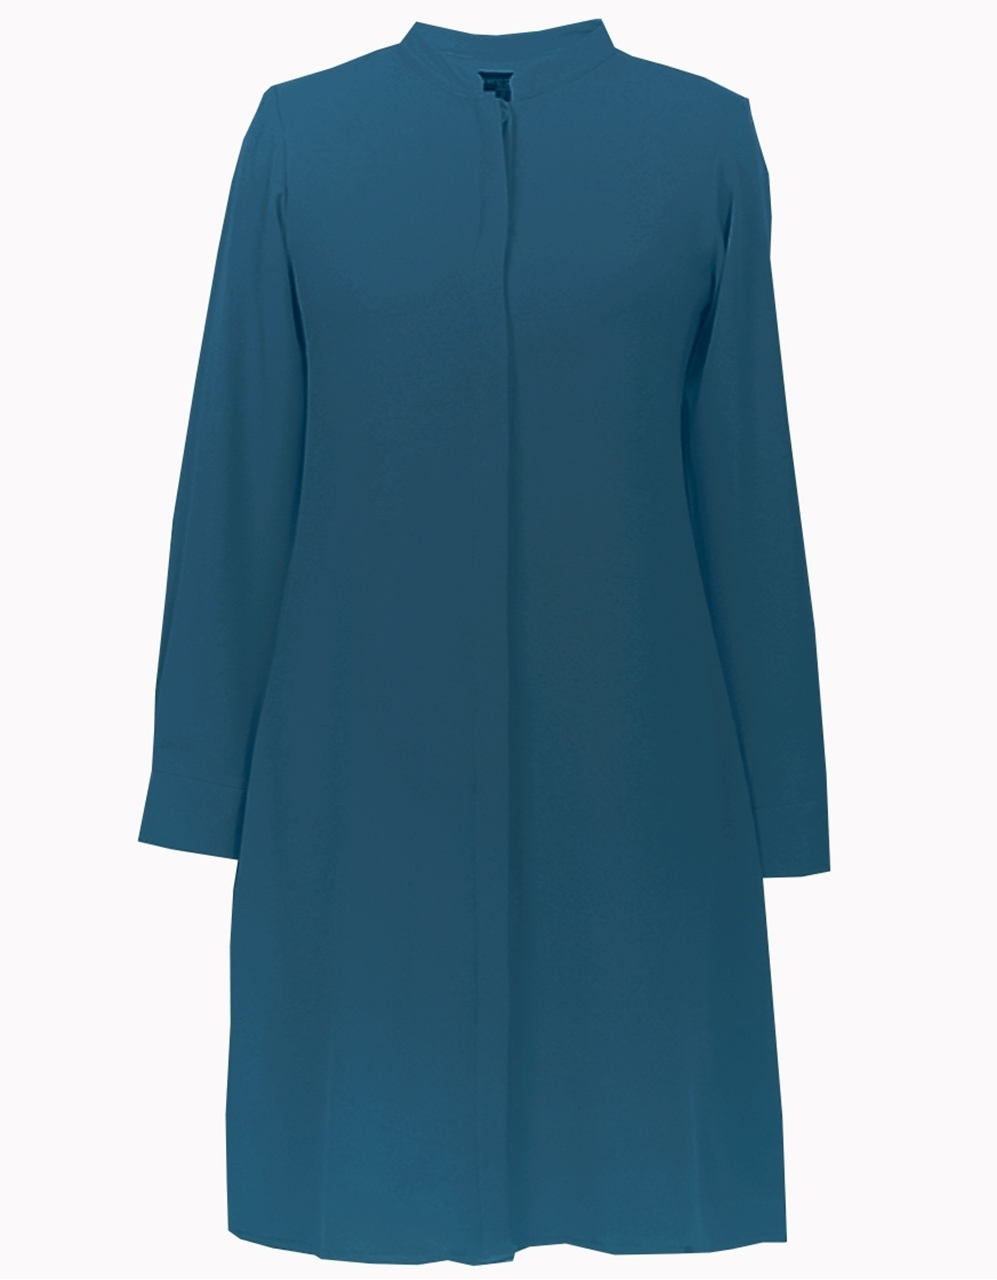 Picture of Alanna Tunic In Ivy Blue [CODE 013 PRE-ORDER]